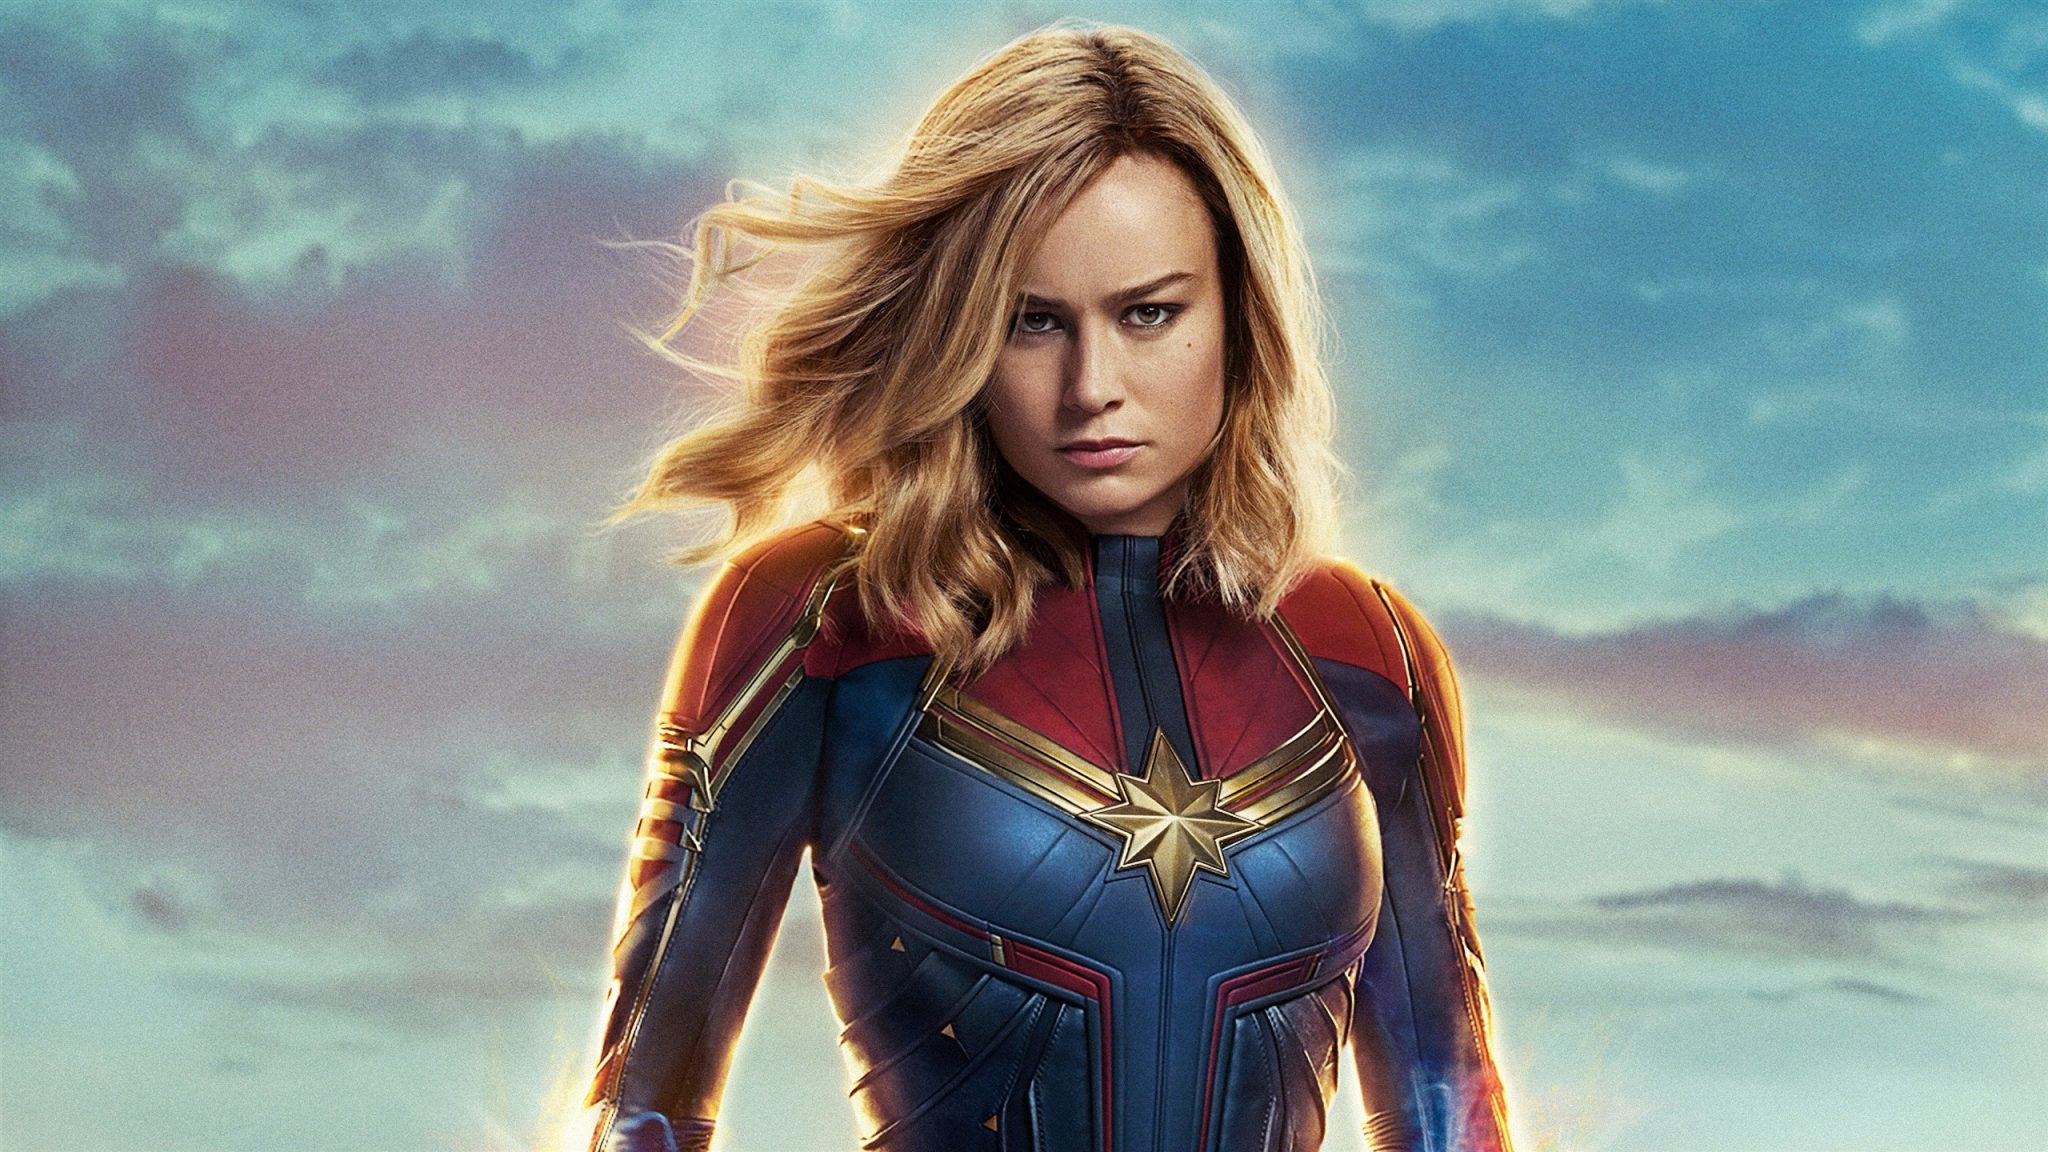 captain-marvel-post-credits-scene-explained-full-breakdown-on-the-plot-storyline-and-both-end-credits-scene.jpg